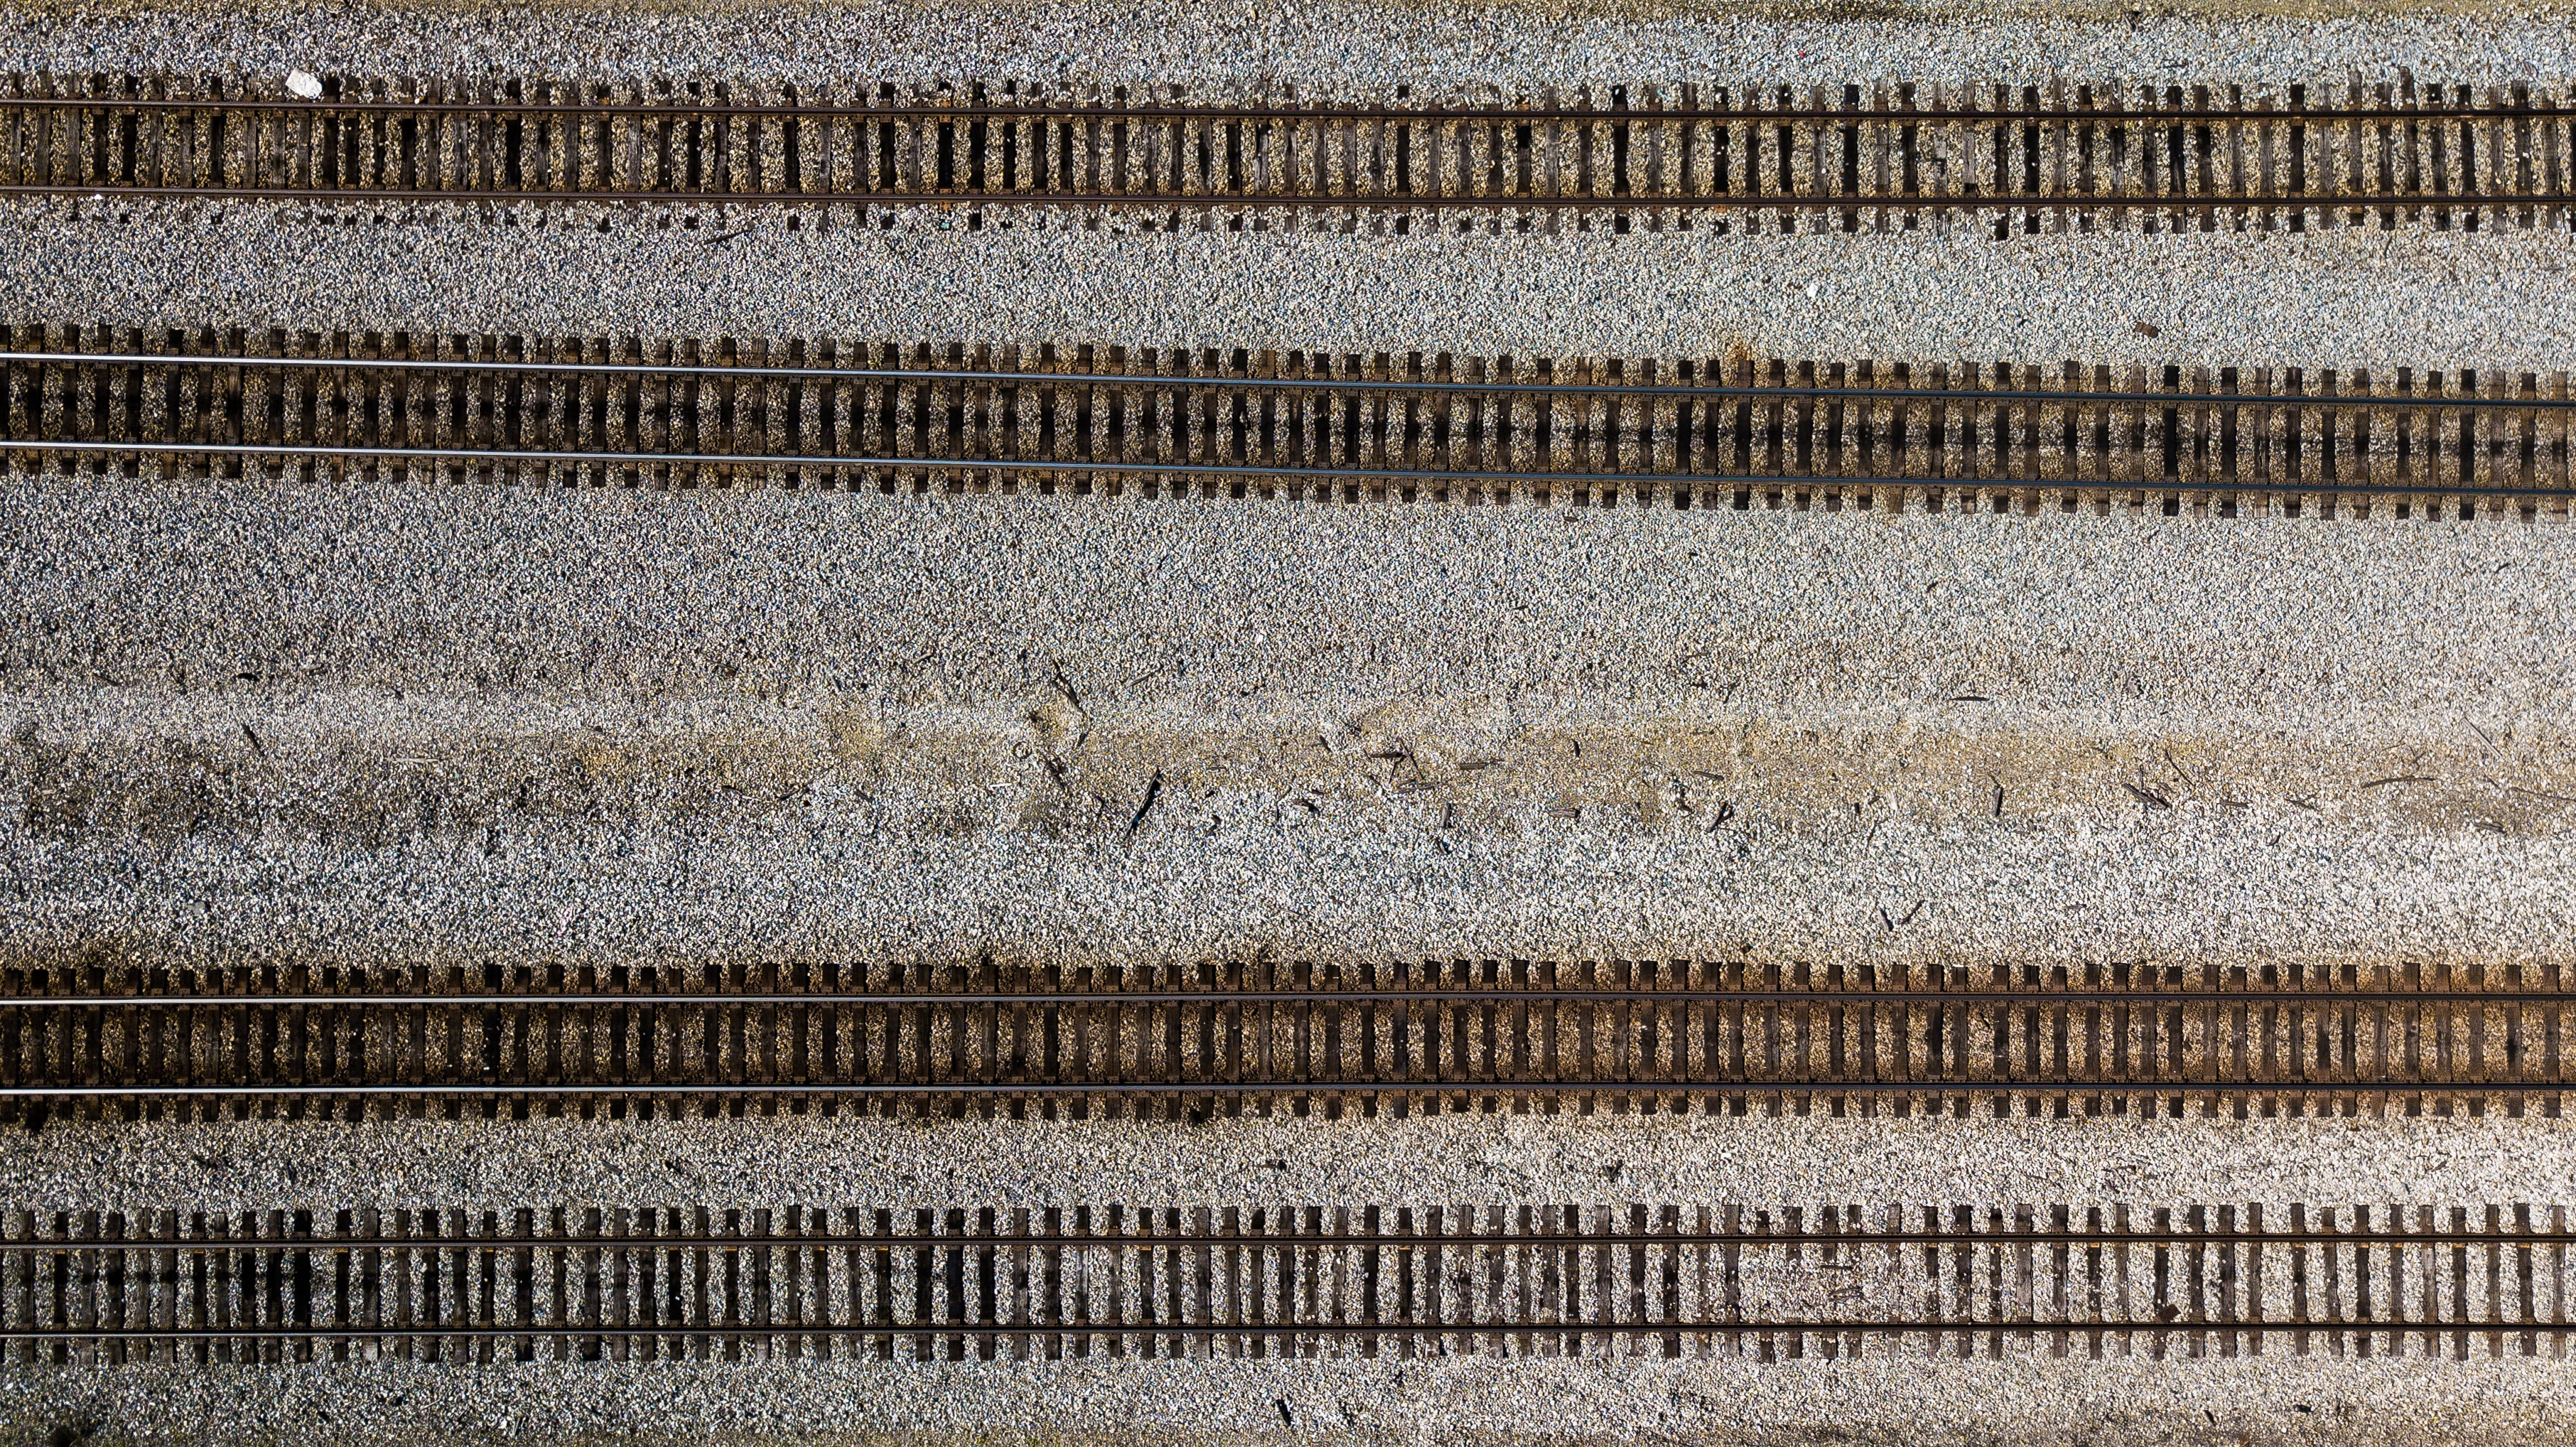 aerial photo of railways